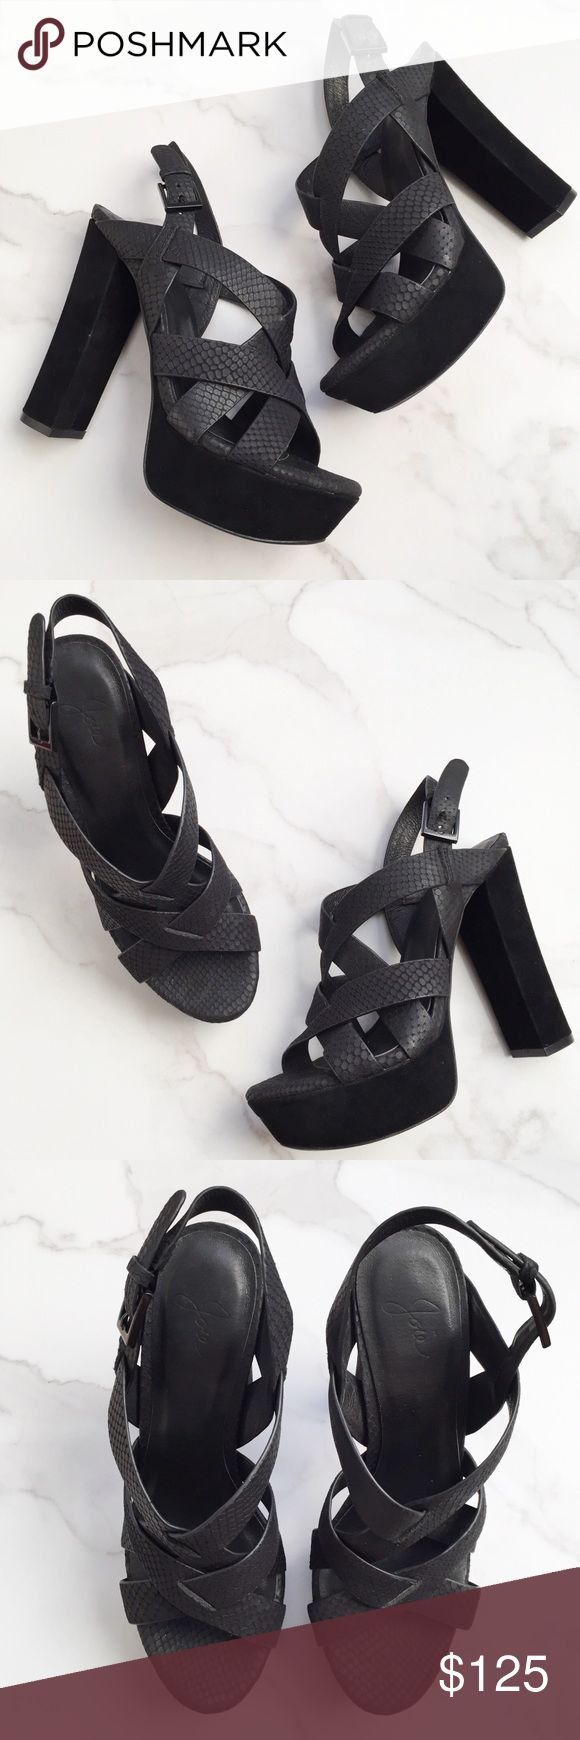 a8fd65b6b704 Joie Inez platform sandals These Joie Inez platform heeled sandals are in  great condition. Only flaw is scuffed front as pictured. Features embossed  leather ...